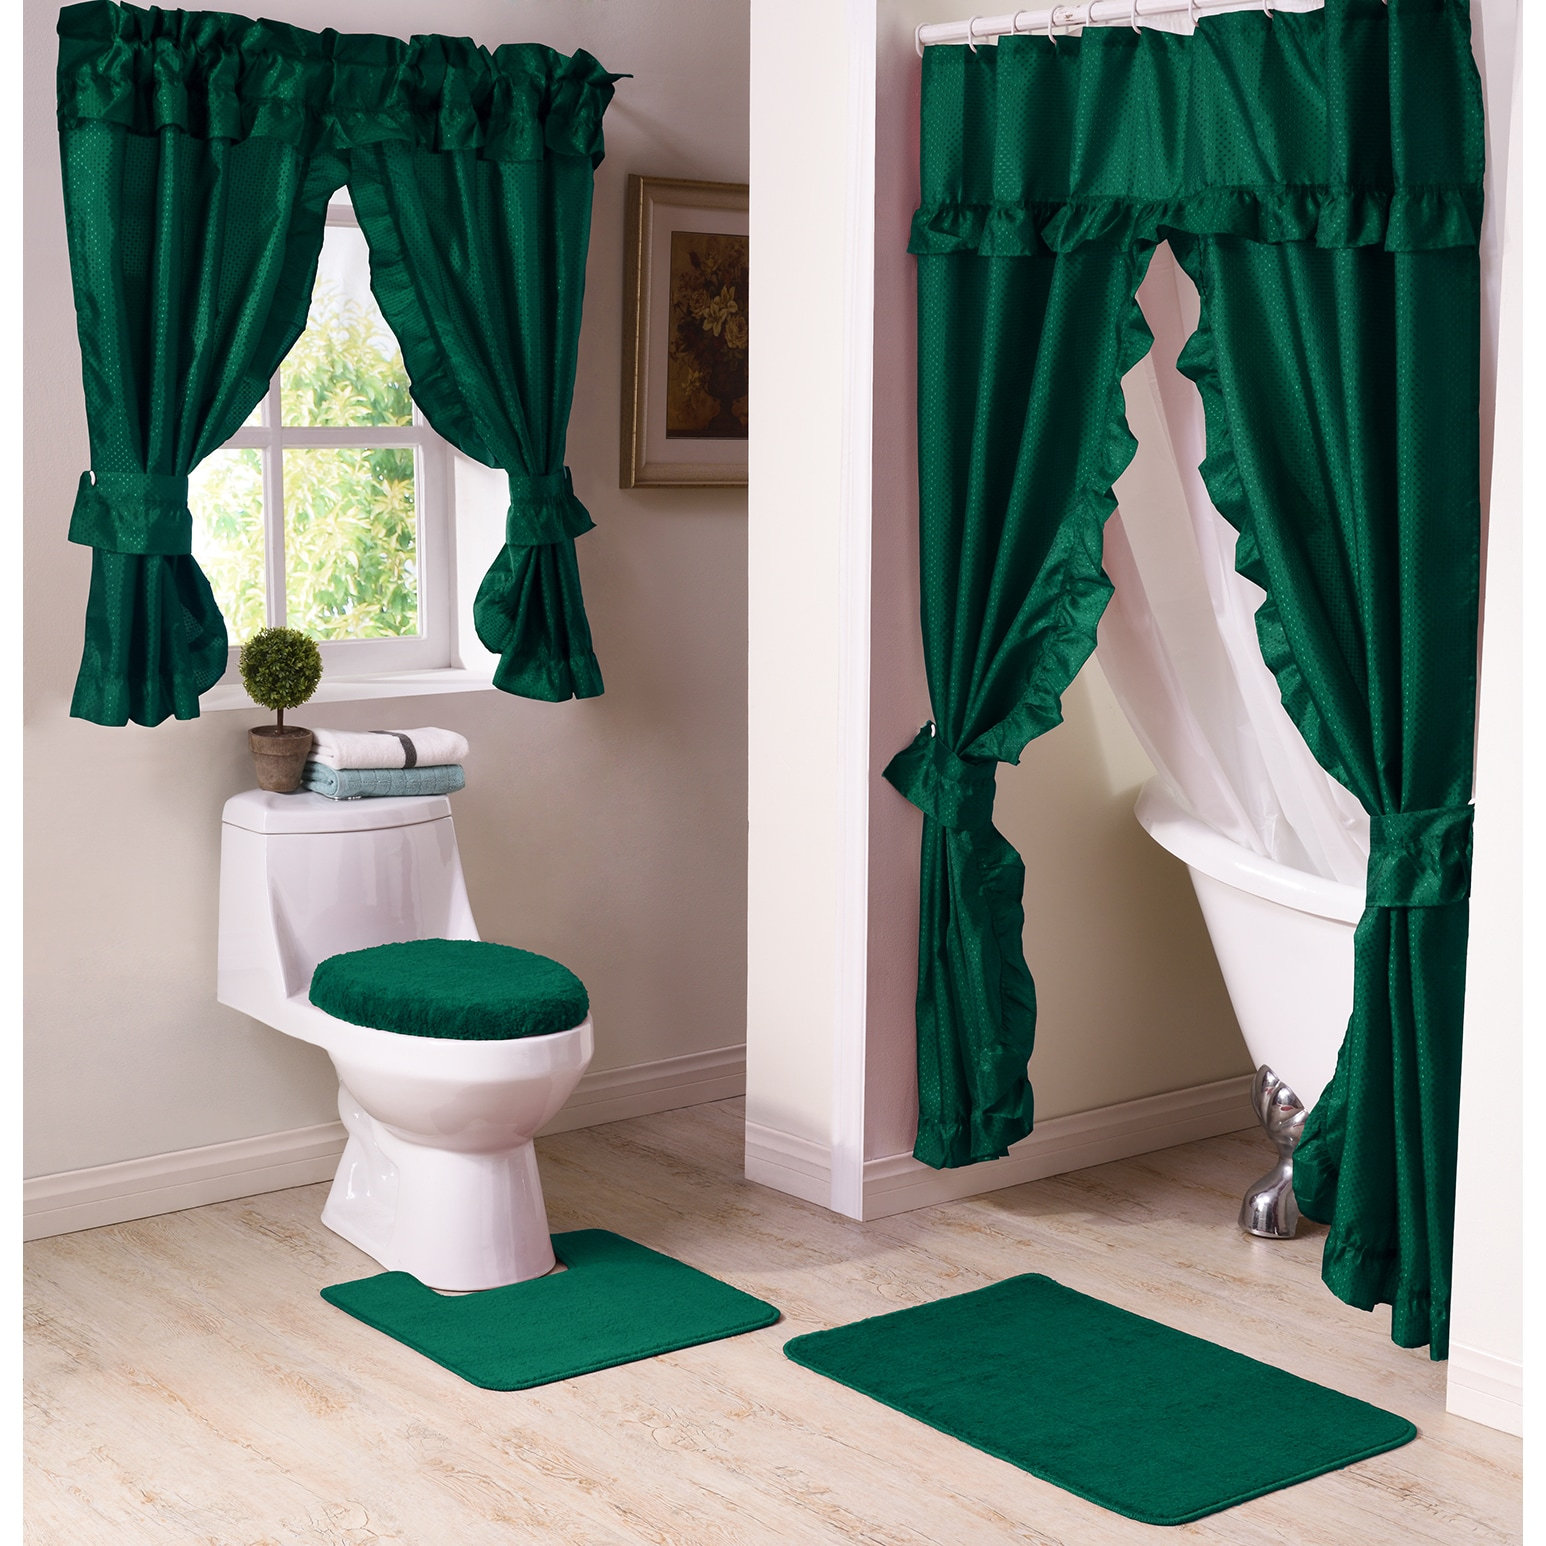 Green Moss and Forest Shower Curtain Toilet Cover Rug Bath Mat Contour Rug Set